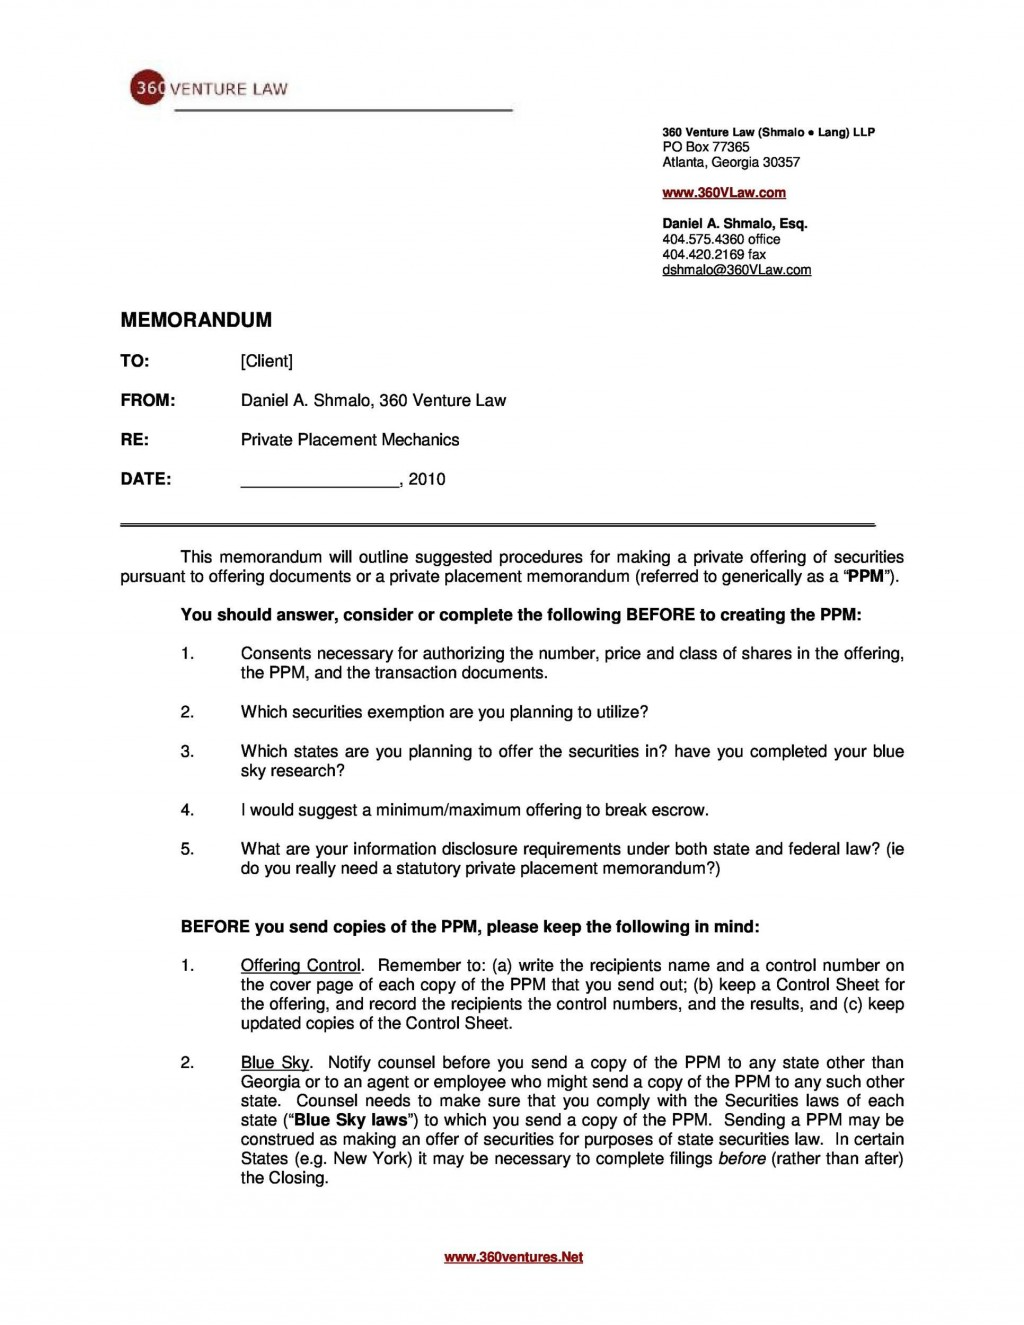 007 Best Private Placement Memorandum Template Idea  Real Estate SingaporeLarge